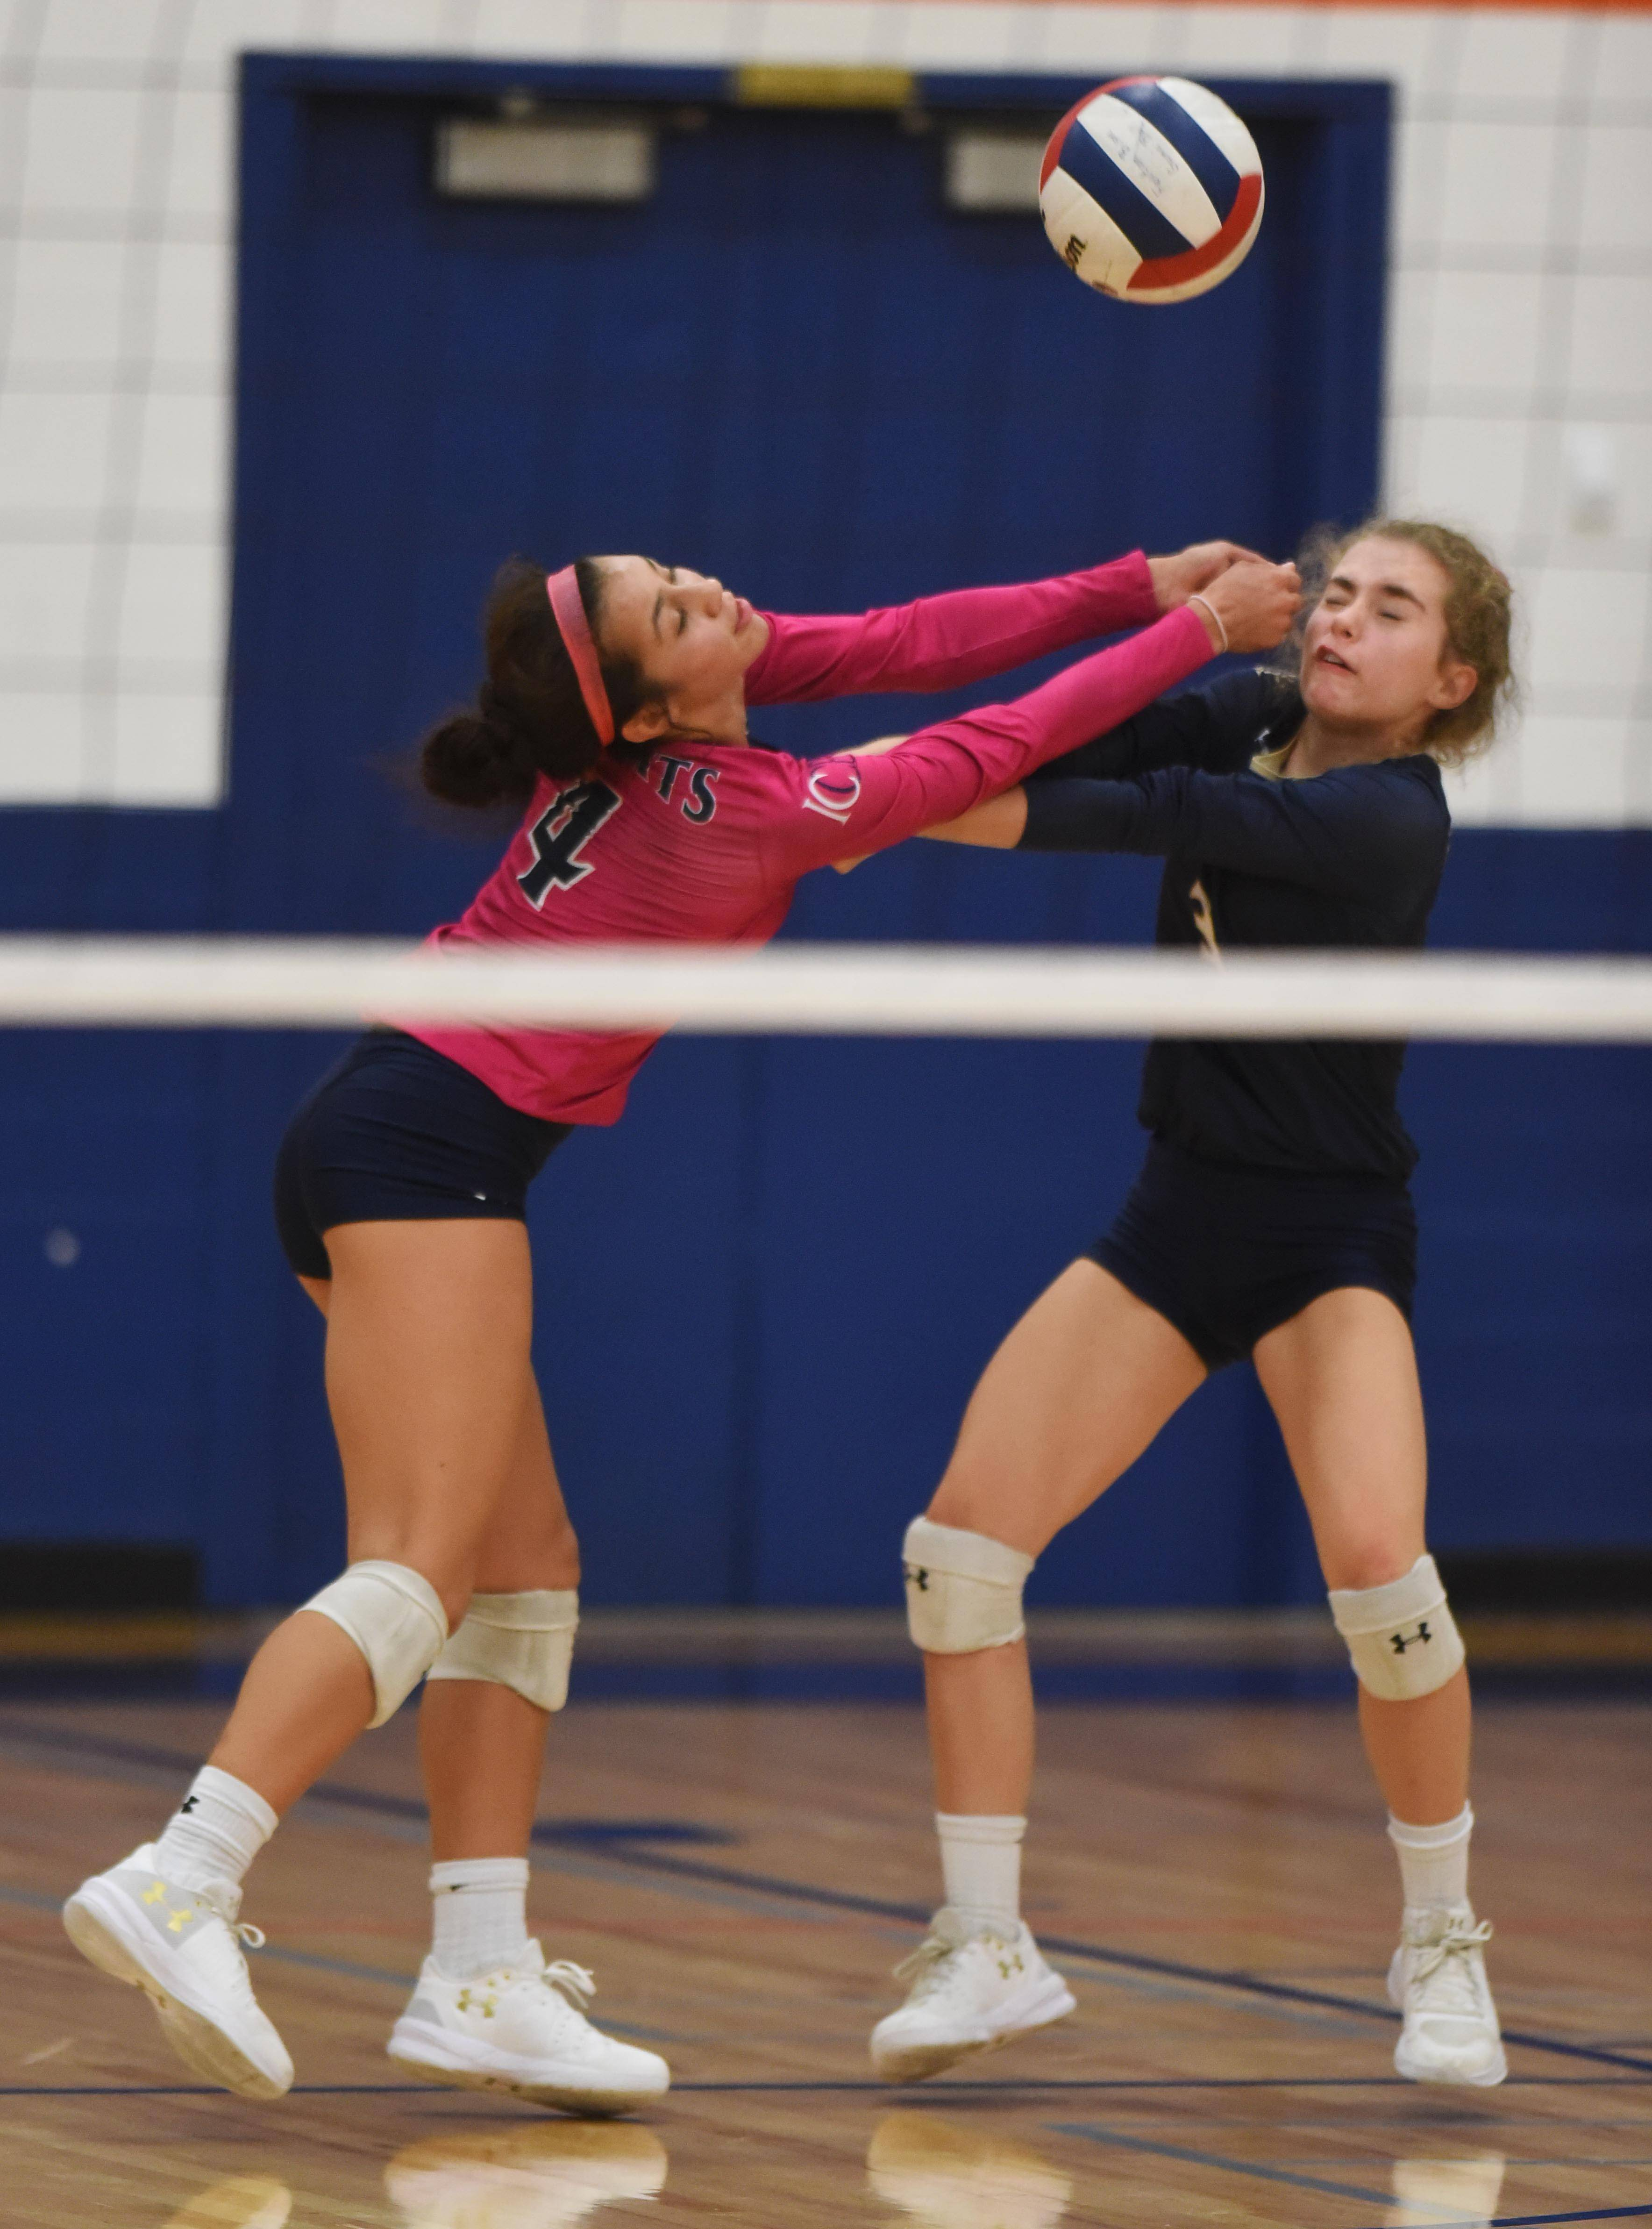 IC Catholic Prep's Isabella Leslie, left, and Morgan Benson converge as they try to keep the ball in play during Tuesday's girls volleyball match against Fenton.